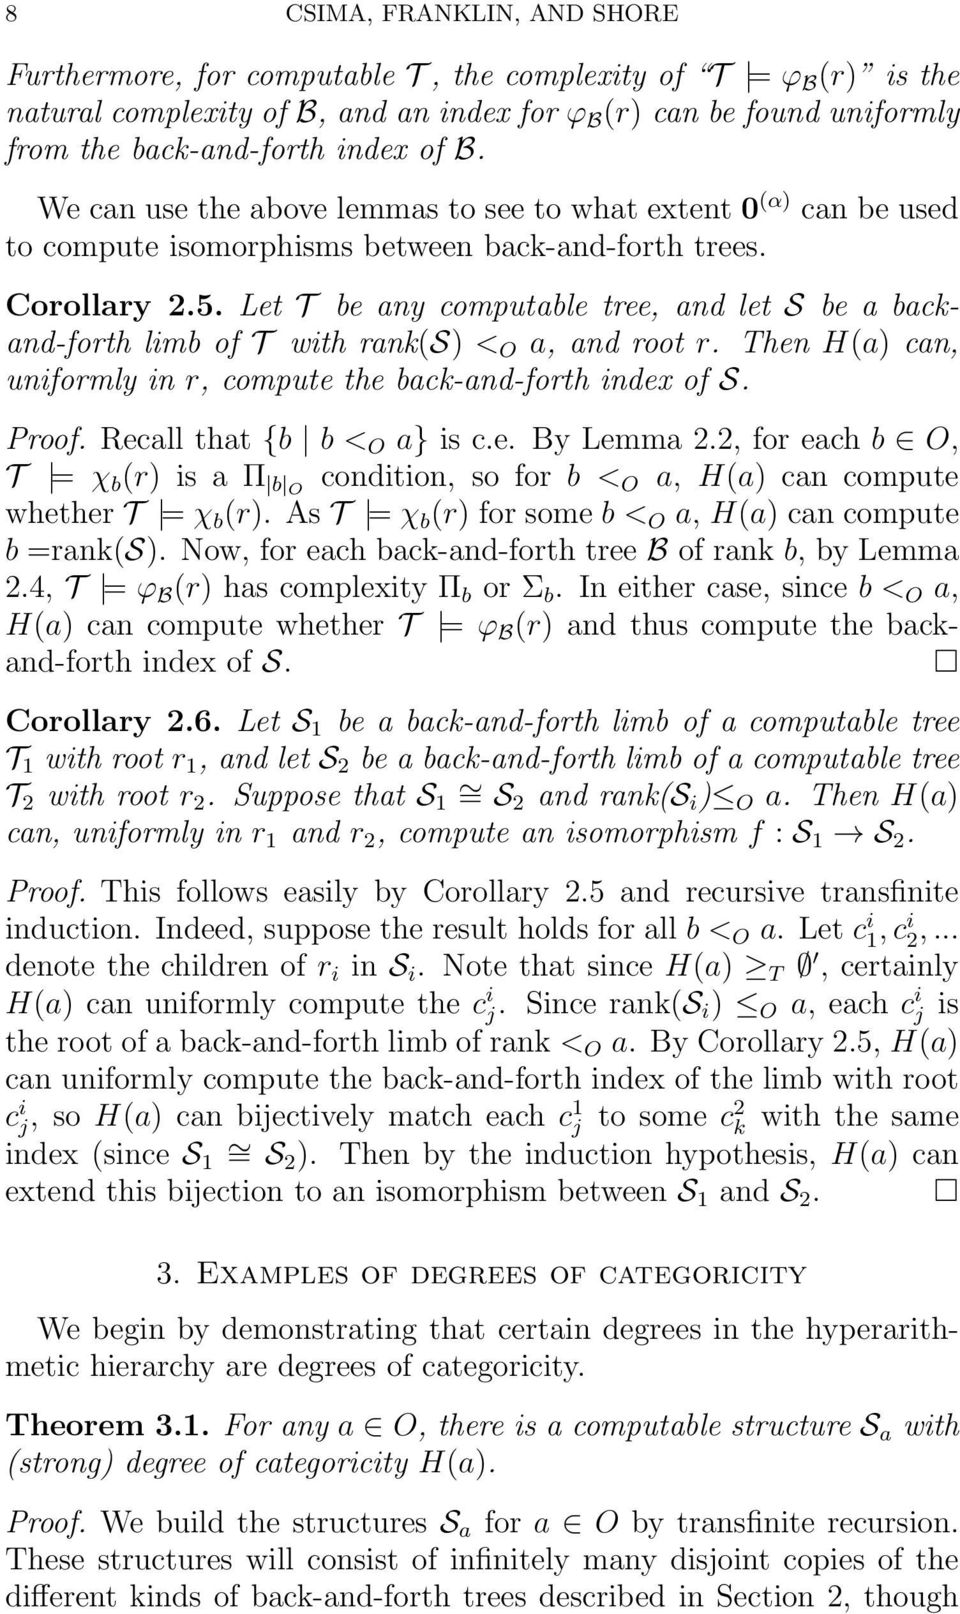 Let T be any computable tree, and let S be a backand-forth limb of T with rank(s) < O a, and root r. Then H(a) can, uniformly in r, compute the back-and-forth index of S. Proof.